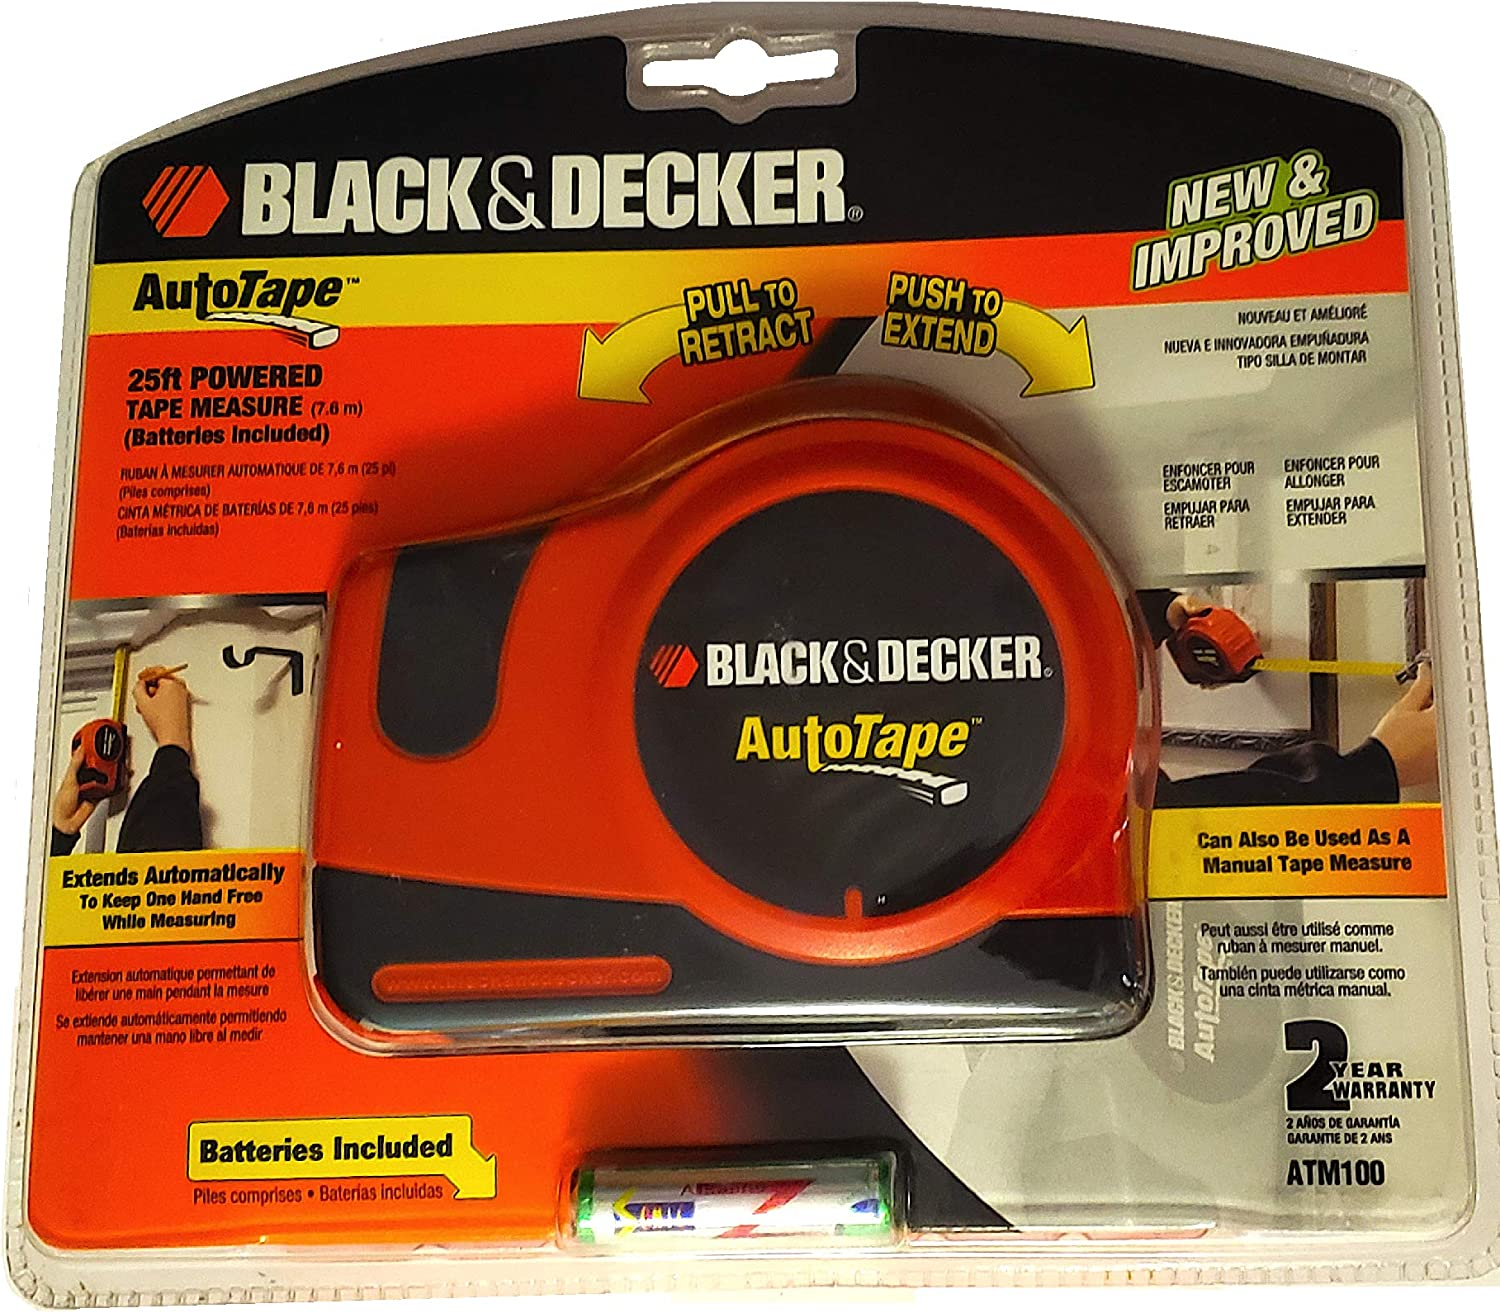 Black and Decker ATM100 New and Improved Autotape Auto Tape Measure Powered Tape Rule